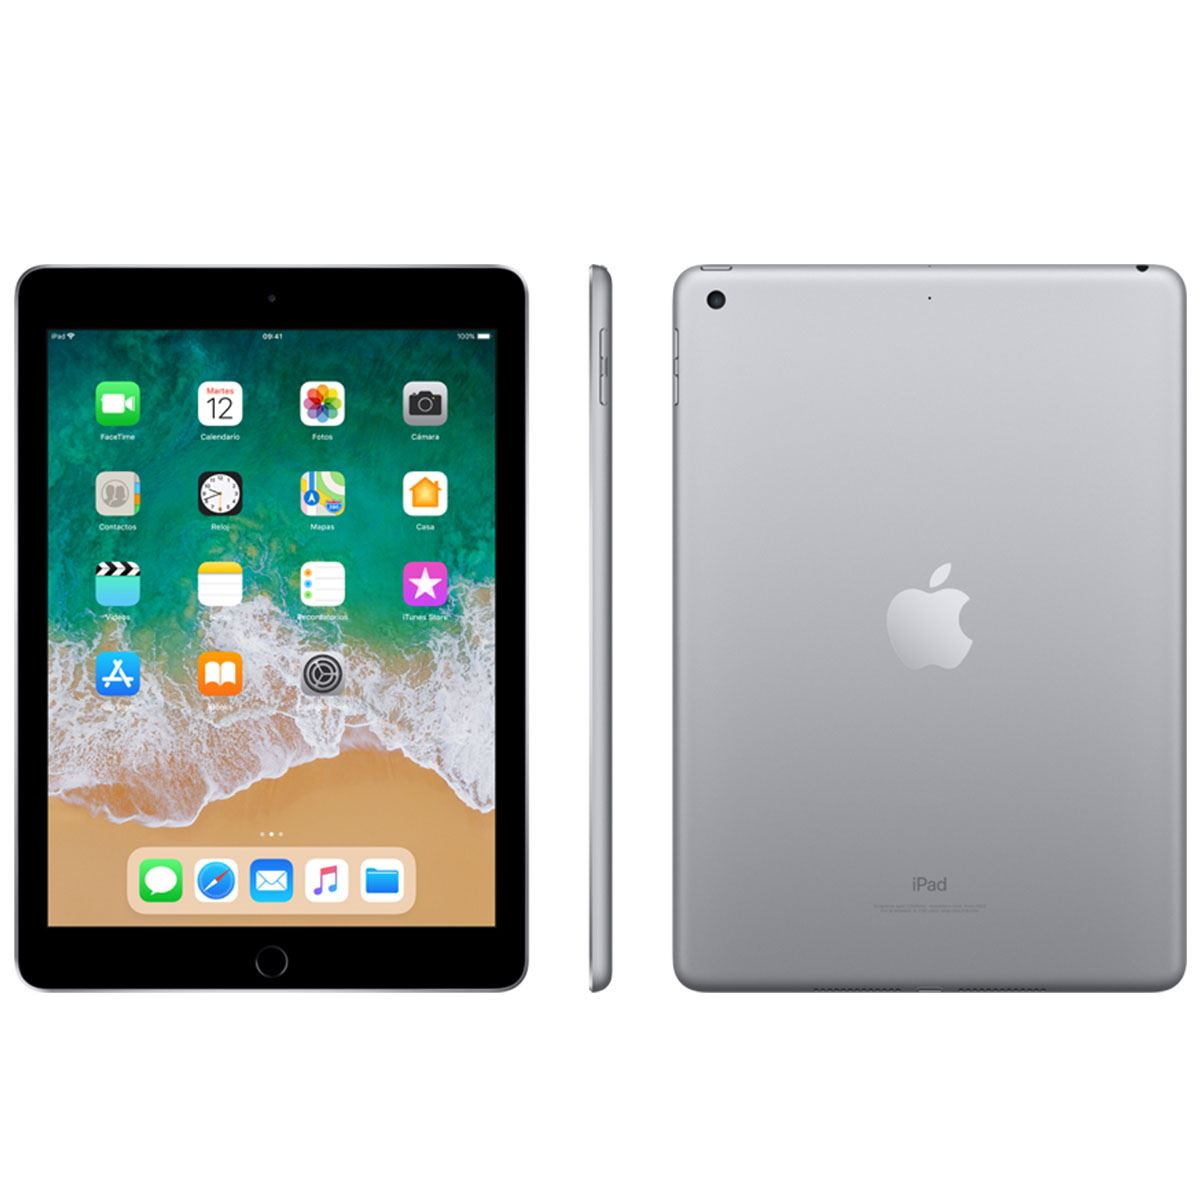 Ipad WI-FI 32GB Space Gray